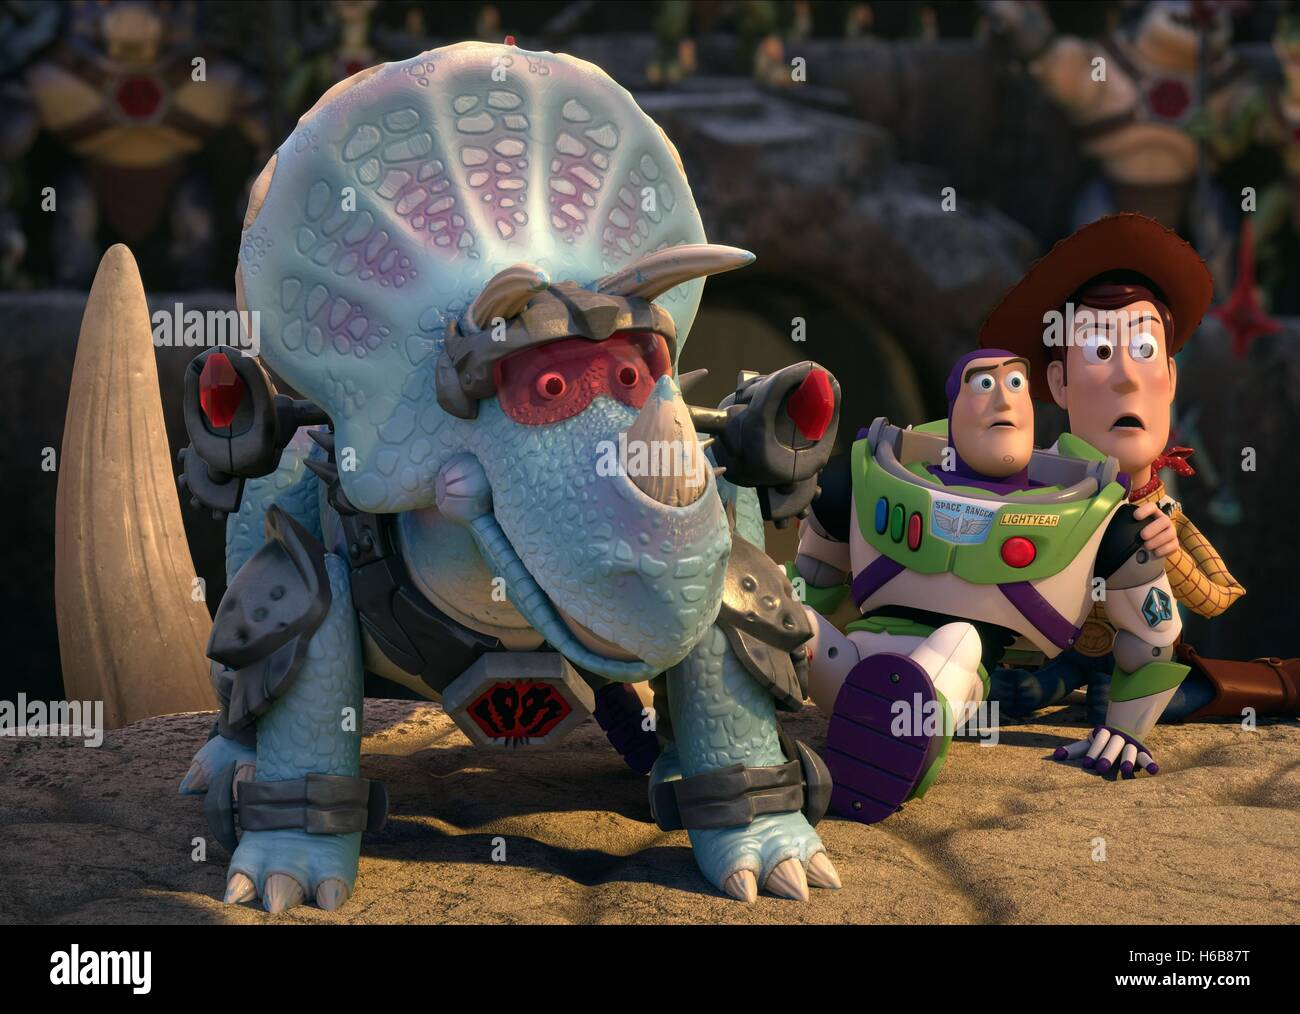 TRIXIE BUZZ LIGHTYEAR & WOODY TOY STORY THAT TIME FORGOT (2014) - Stock Image